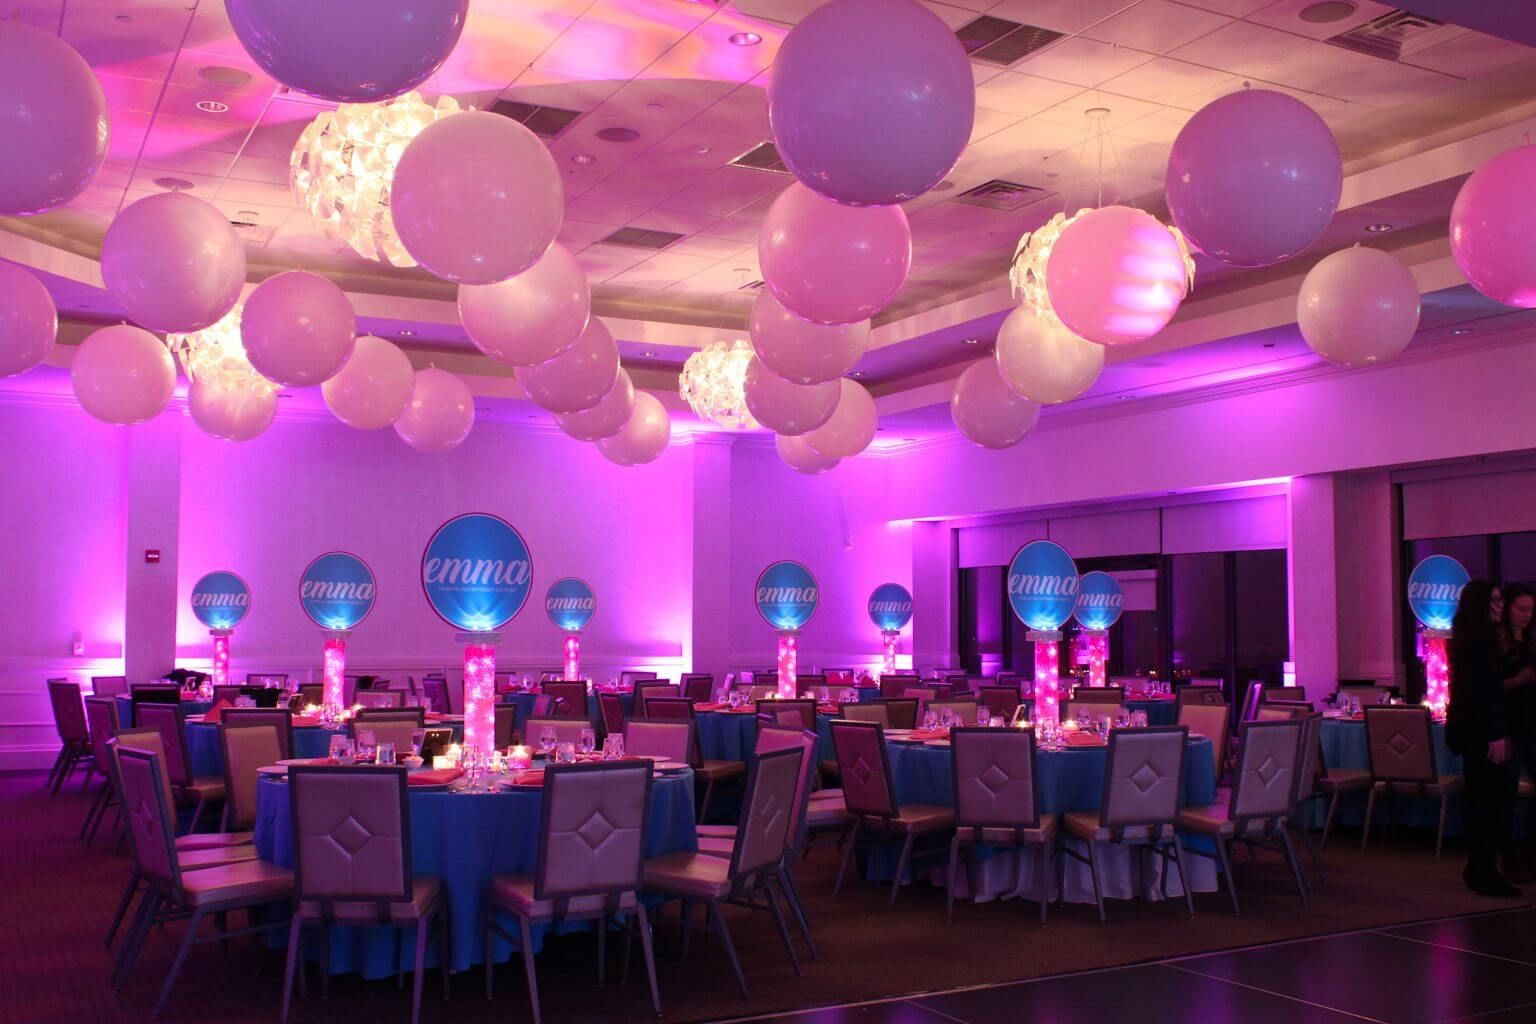 3 White Balloons On Ceiling For Club Themed Bat Mitzvah At Galloping Hills Golf Course